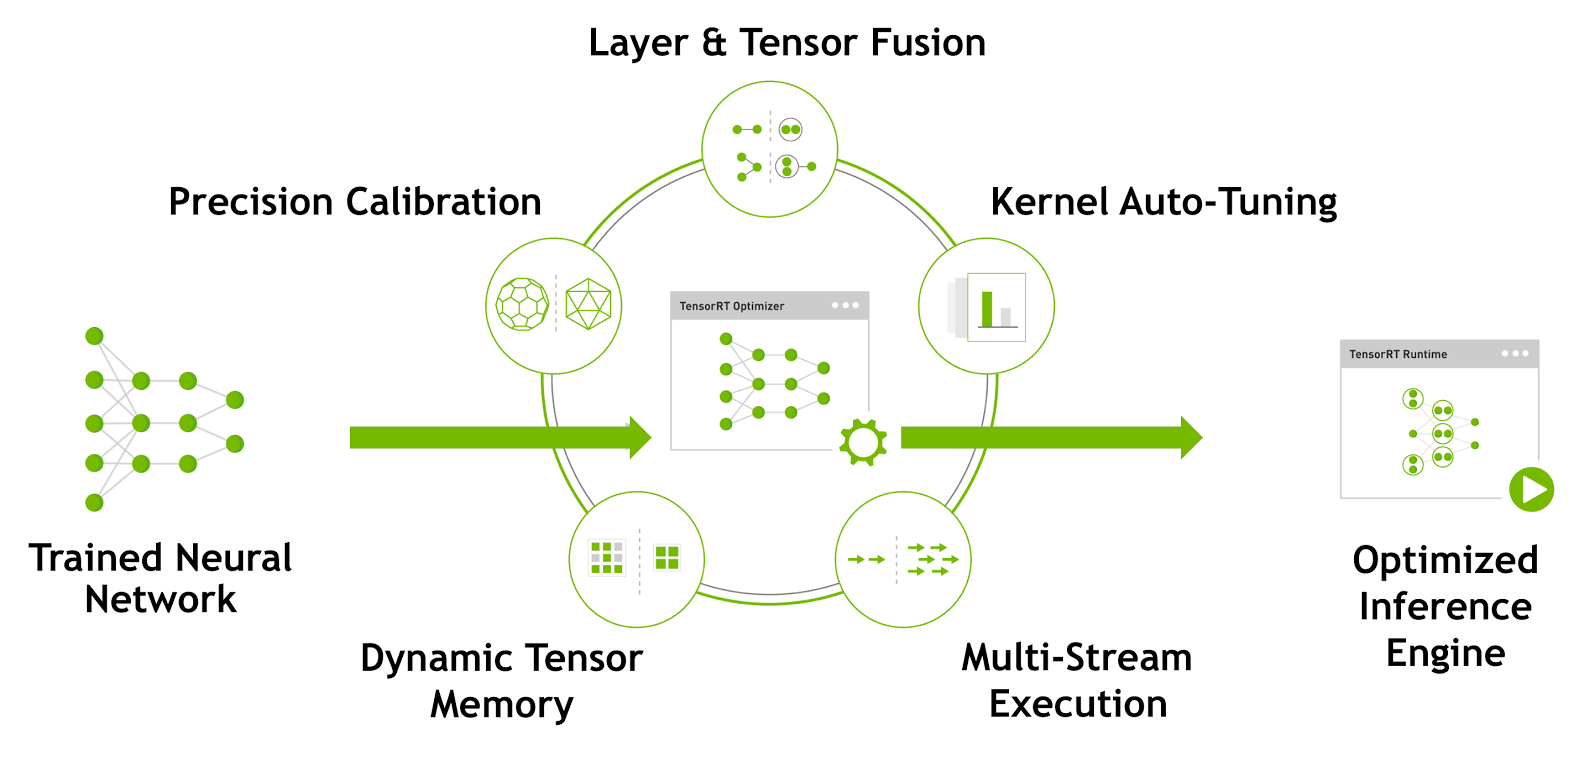 Figure 1. TensorRT optimizes trained neural network models to produce deployment-ready runtime inference engines.